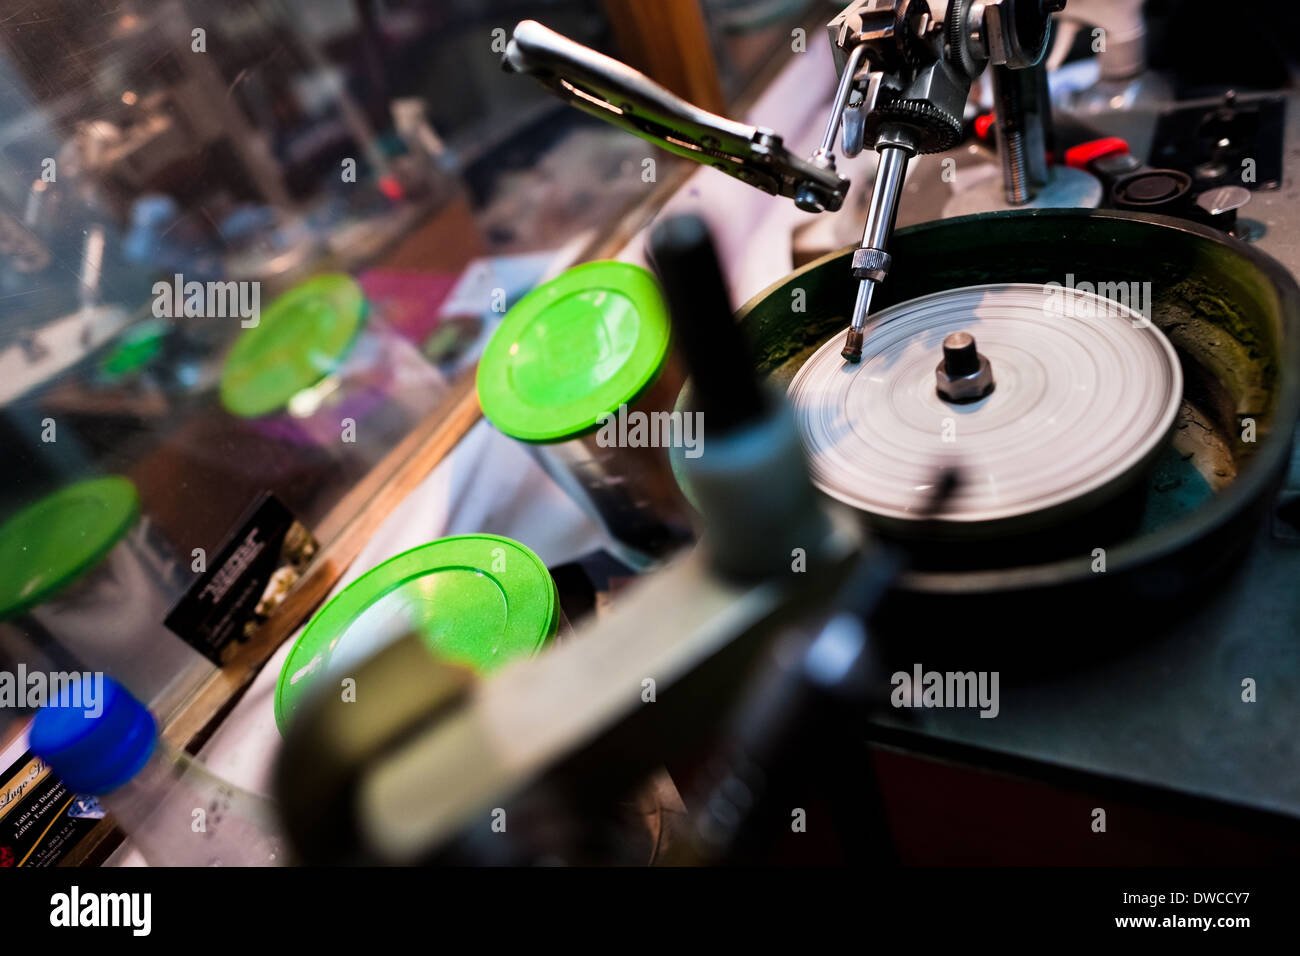 An emerald gemstone seen being polished on a machine a in a cutting and polishing workshop in Bogota, Colombia. - Stock Image